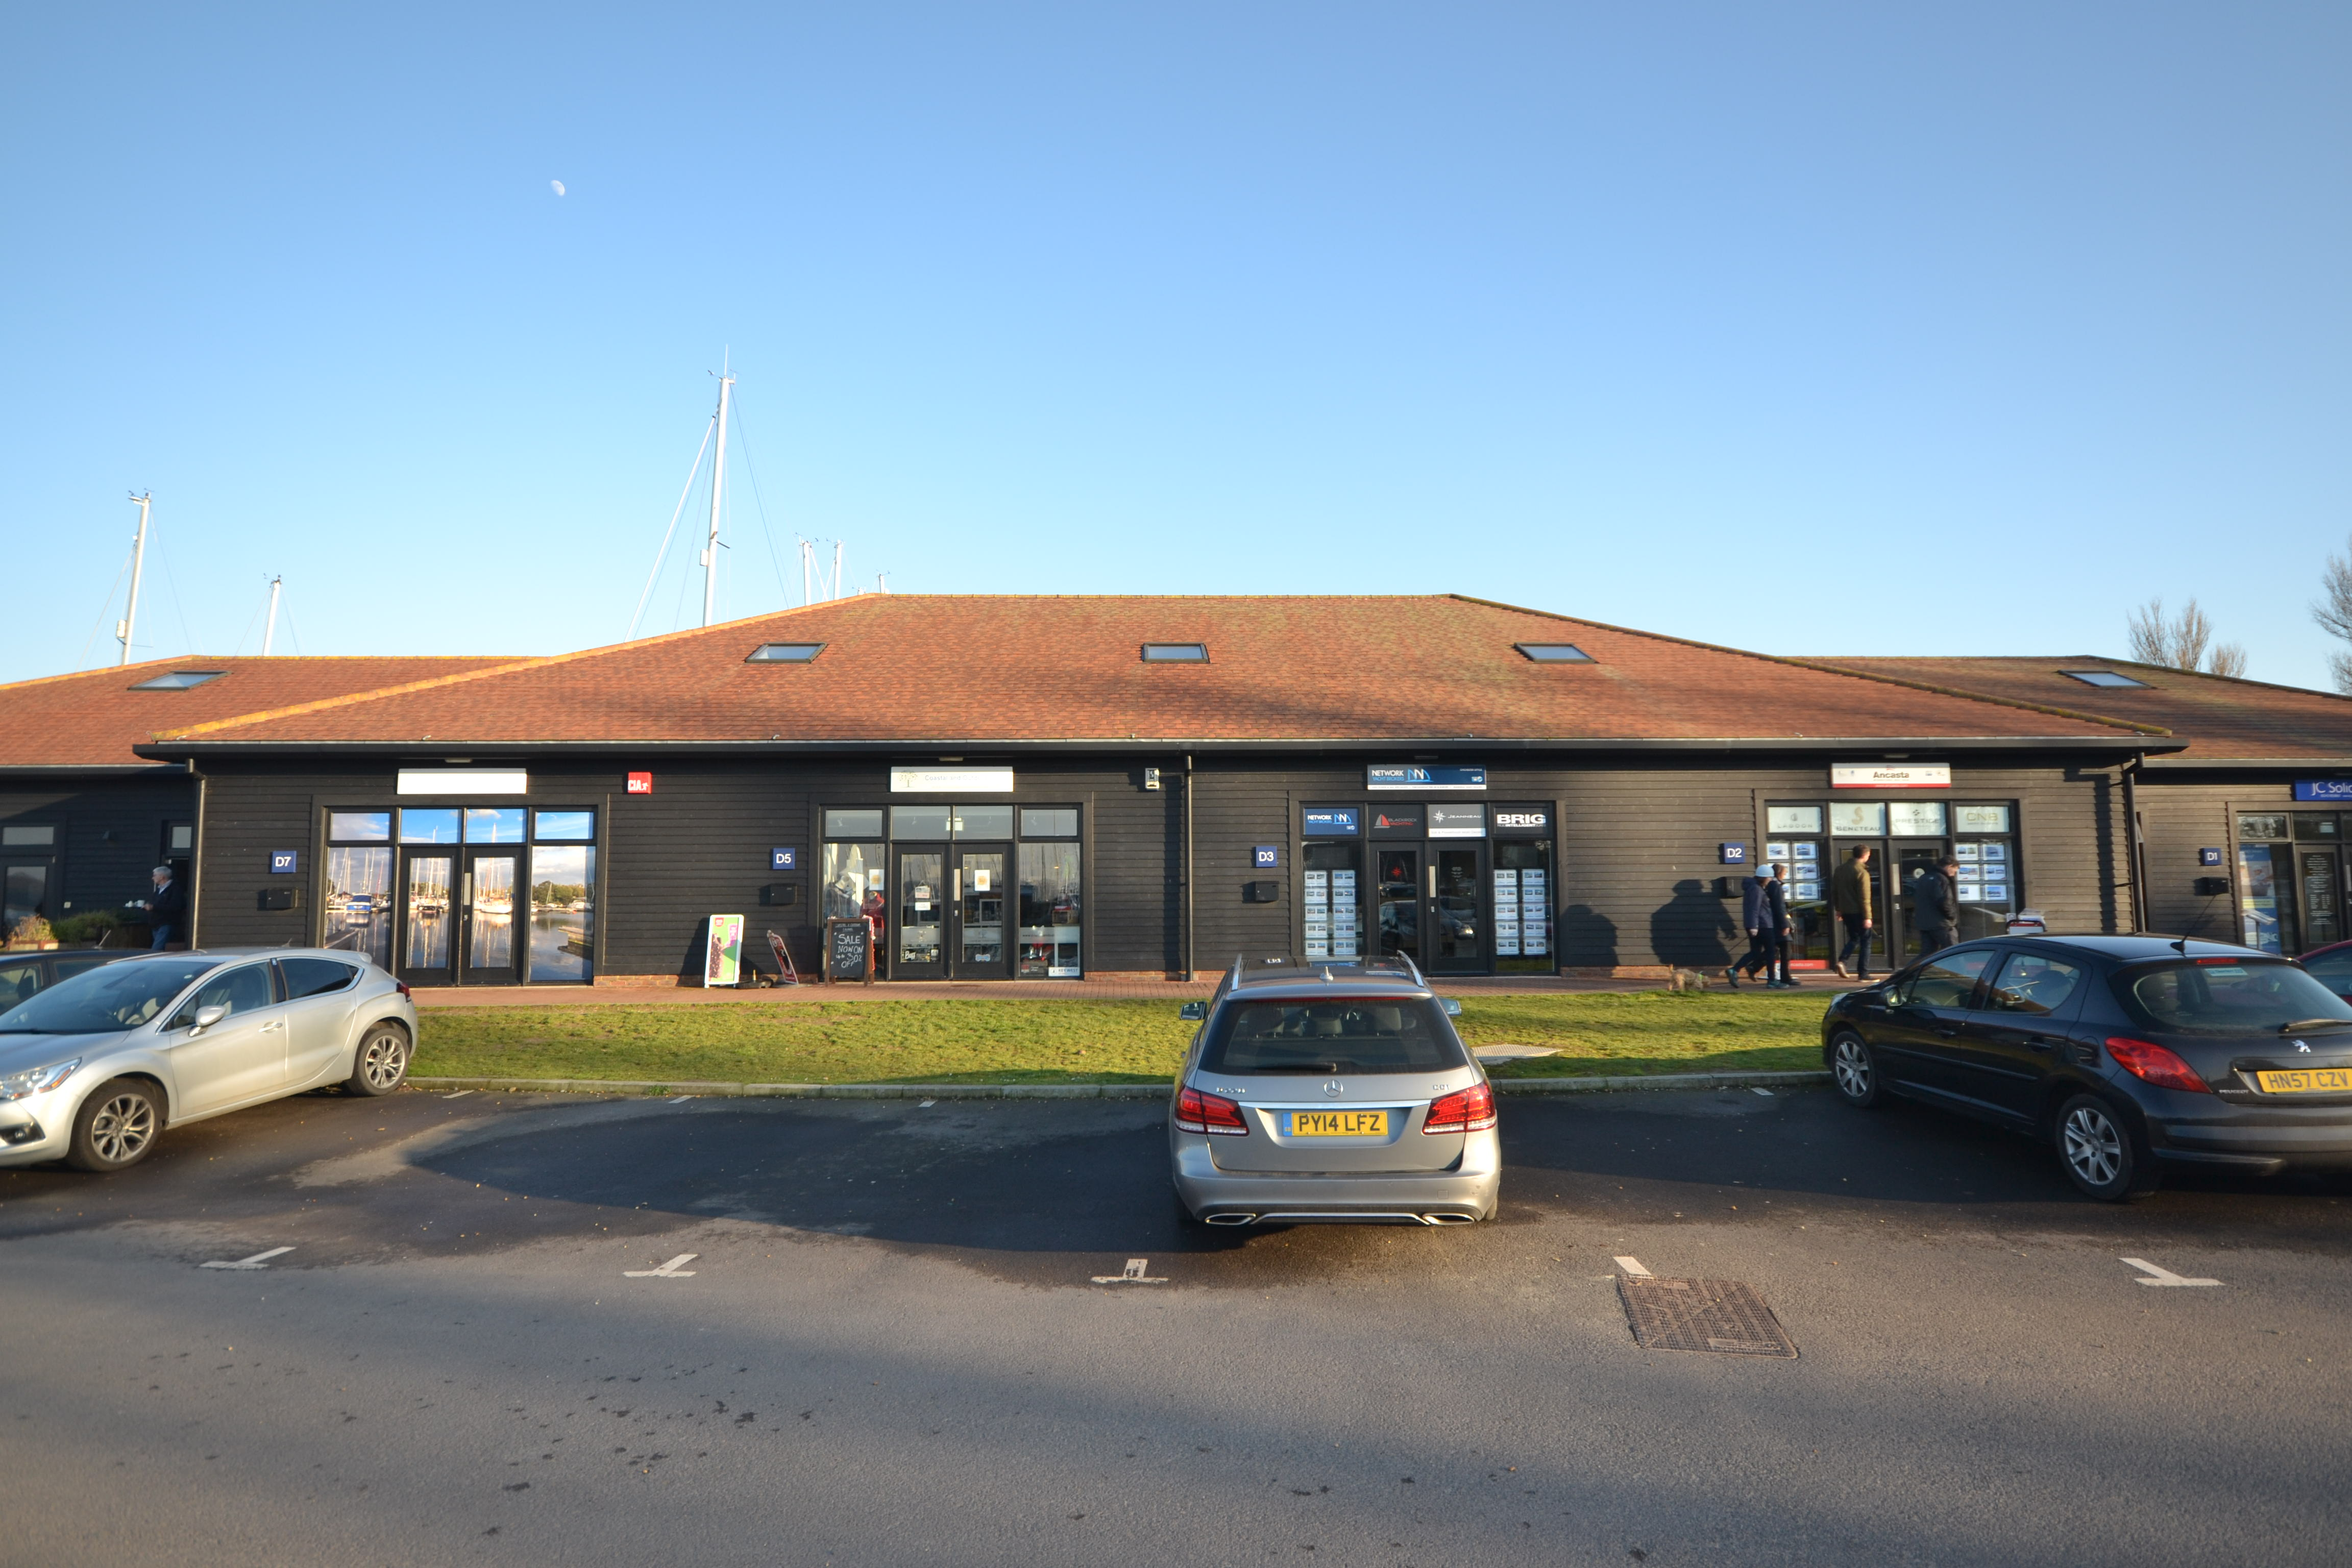 0 bed Distribution Warehouse for rent in Chichester. From Henry Adams Commercial